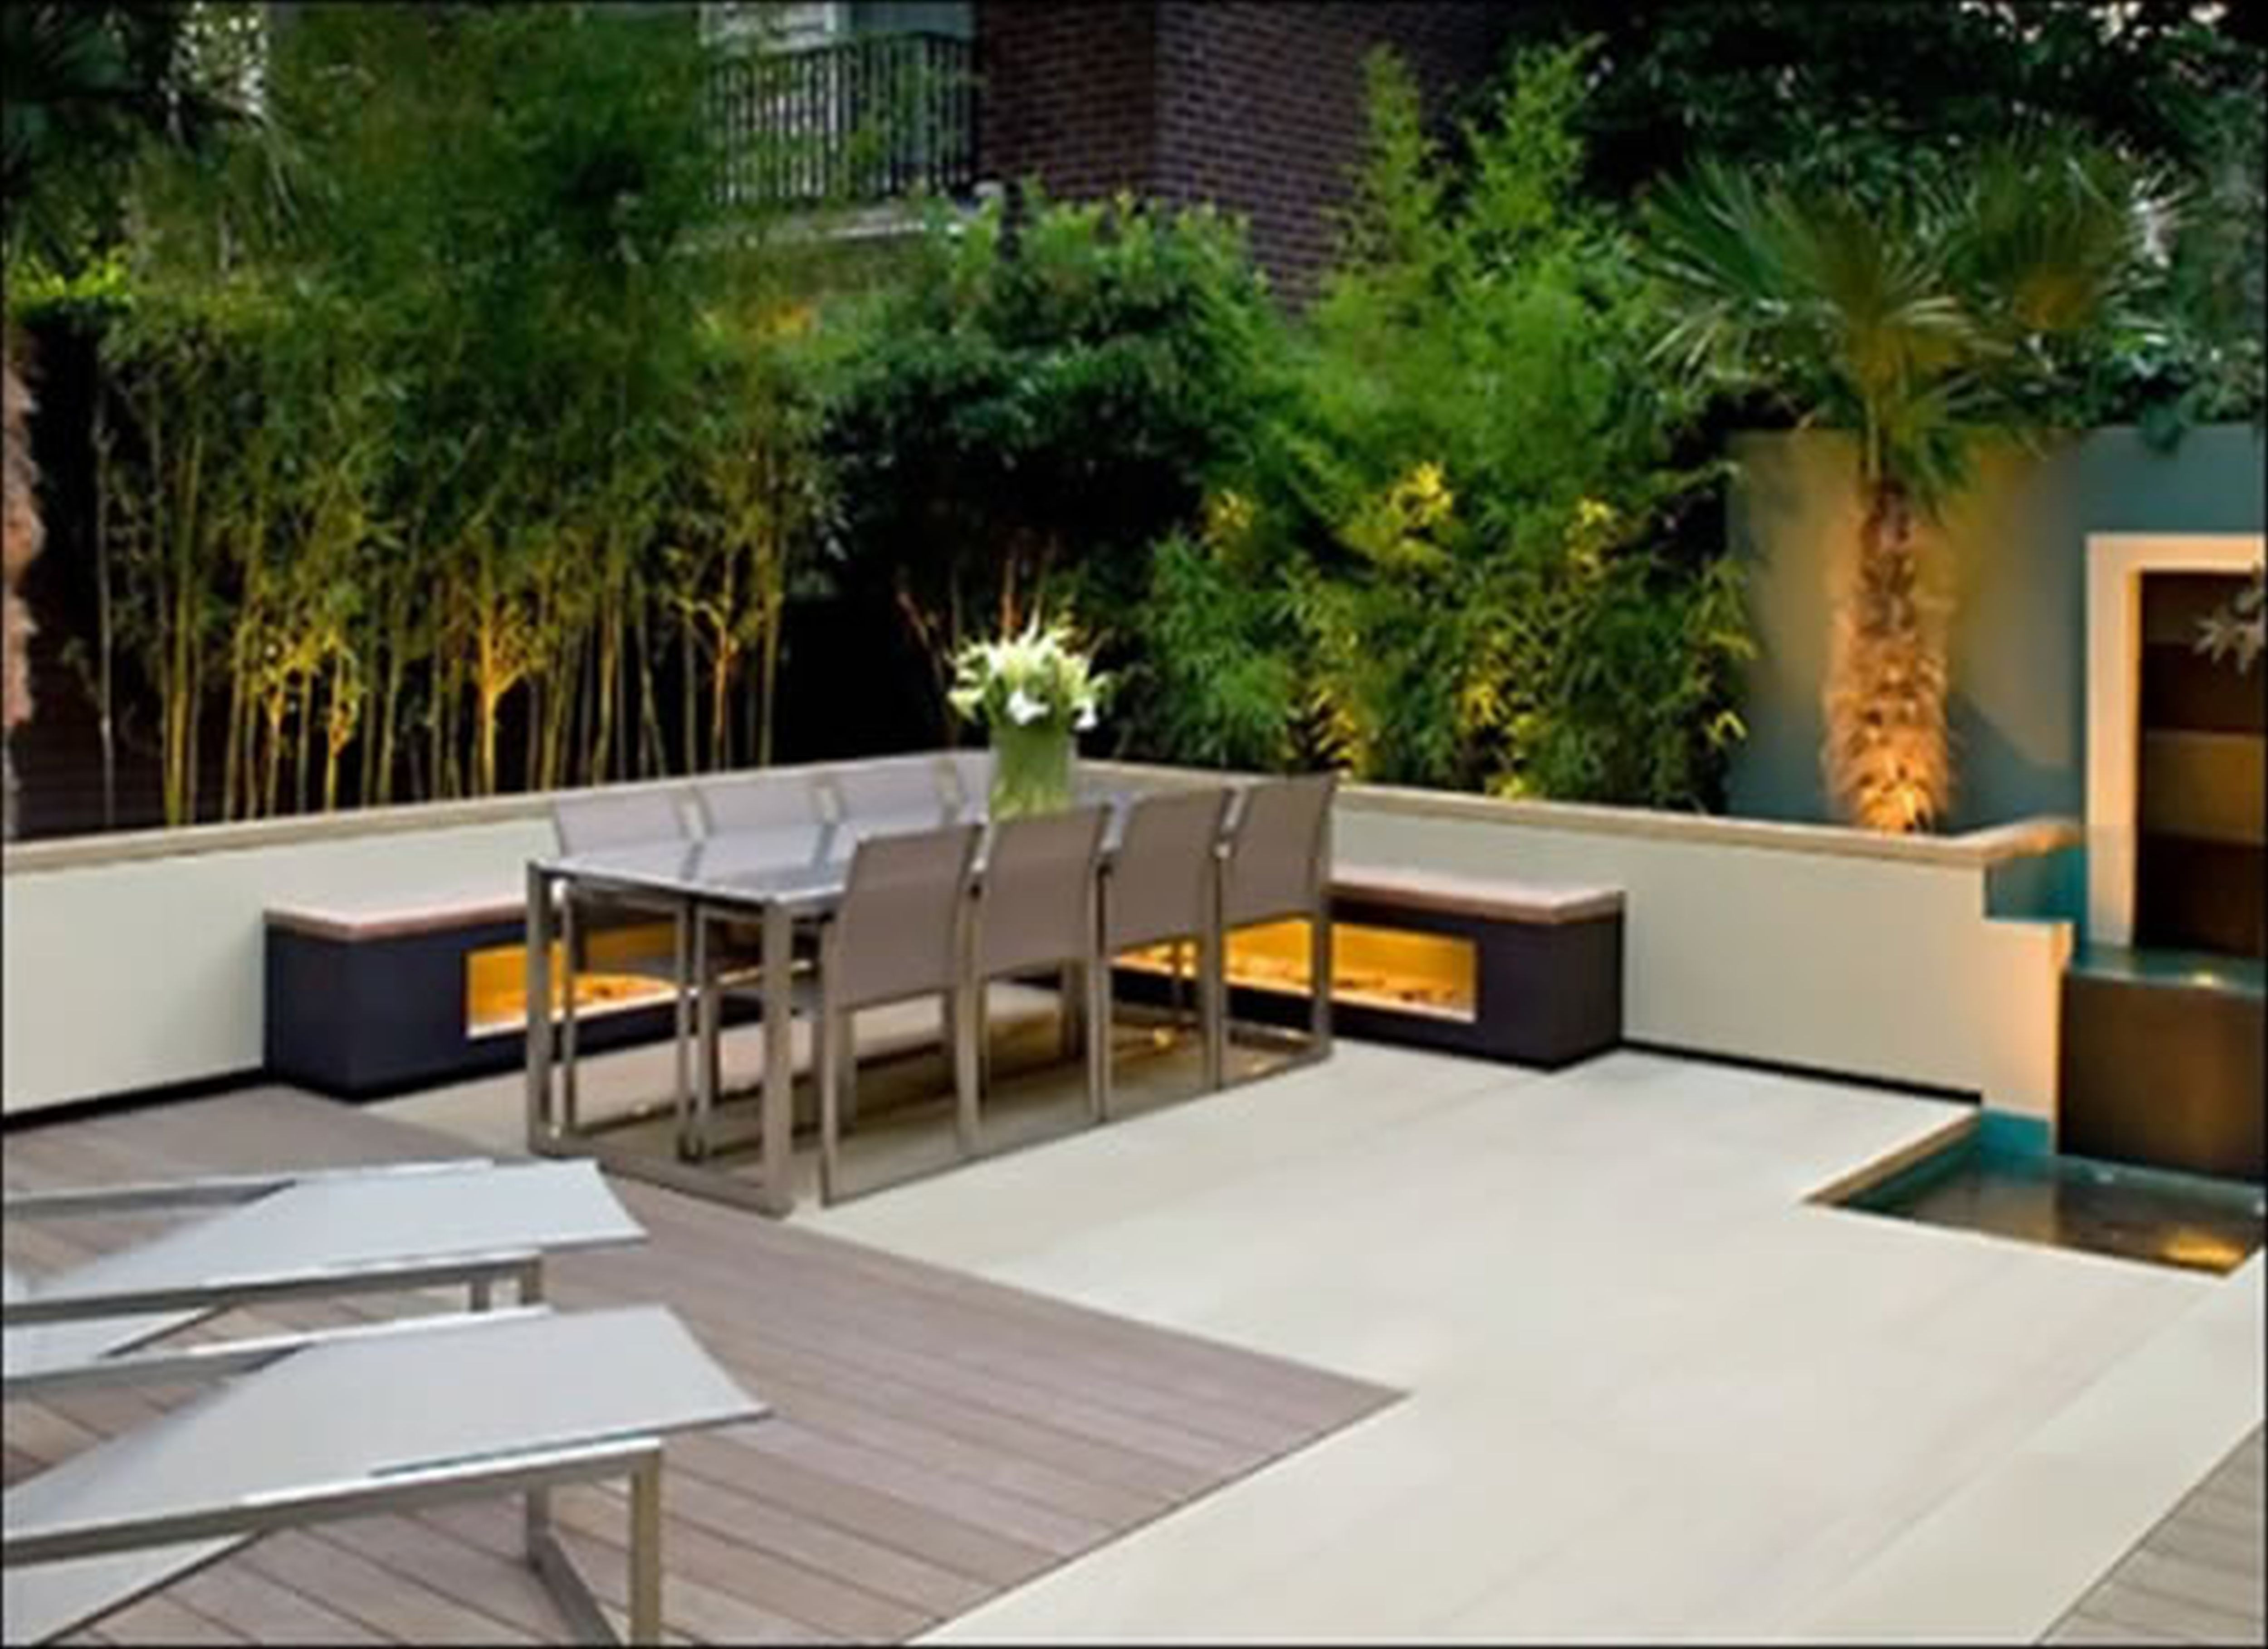 Best ideas about Modern Backyard Ideas . Save or Pin How to create a Magnificent private backyard Now.